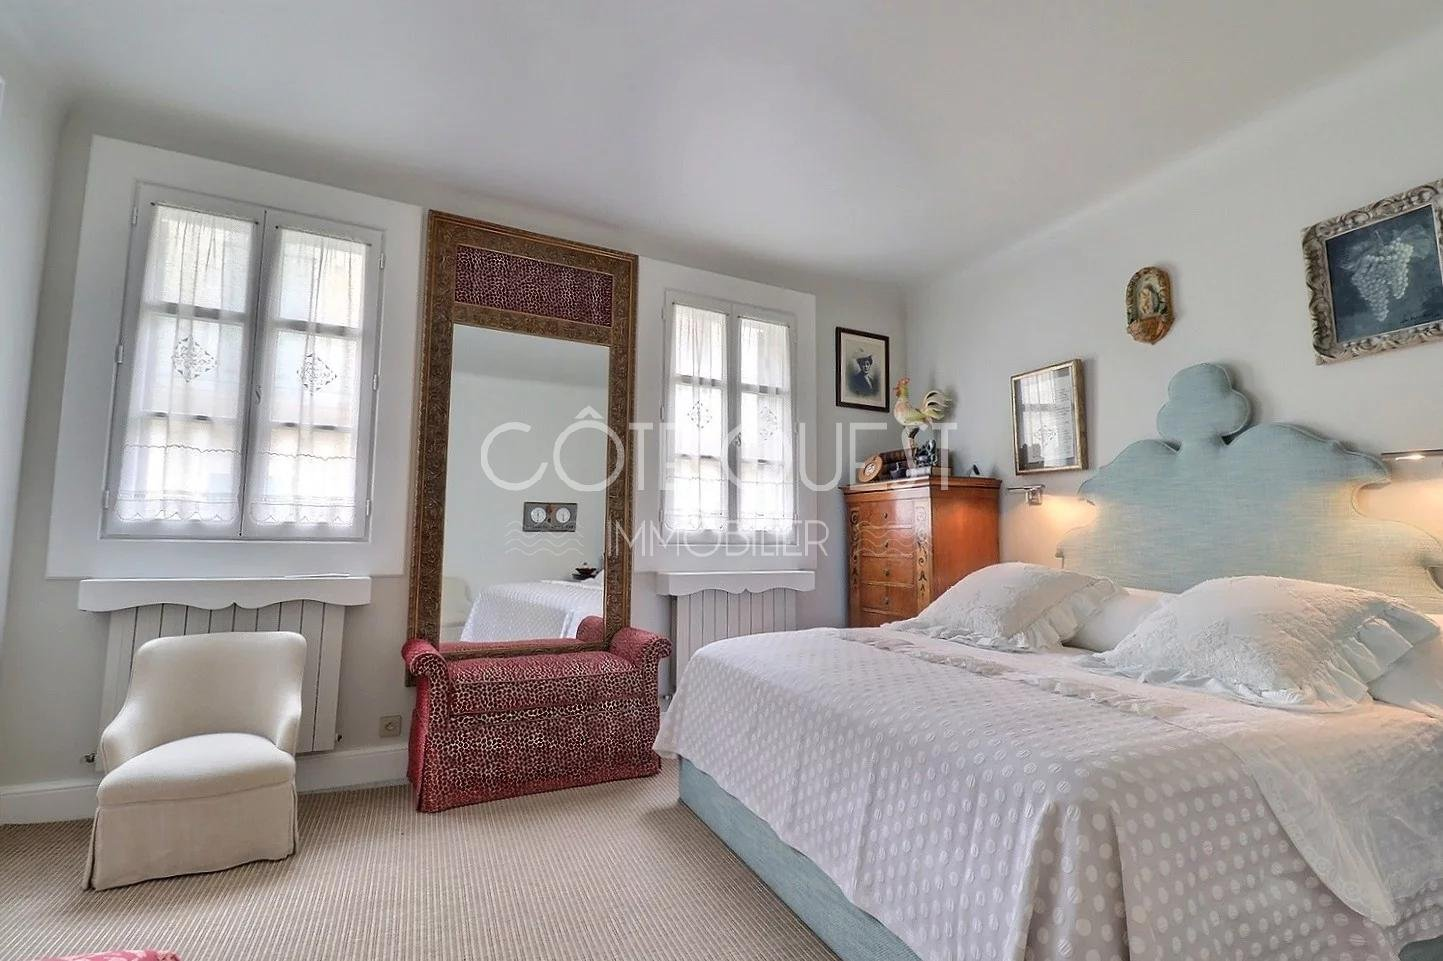 A CHARACTER VILLA IN THE HEART OF BIARRITZ